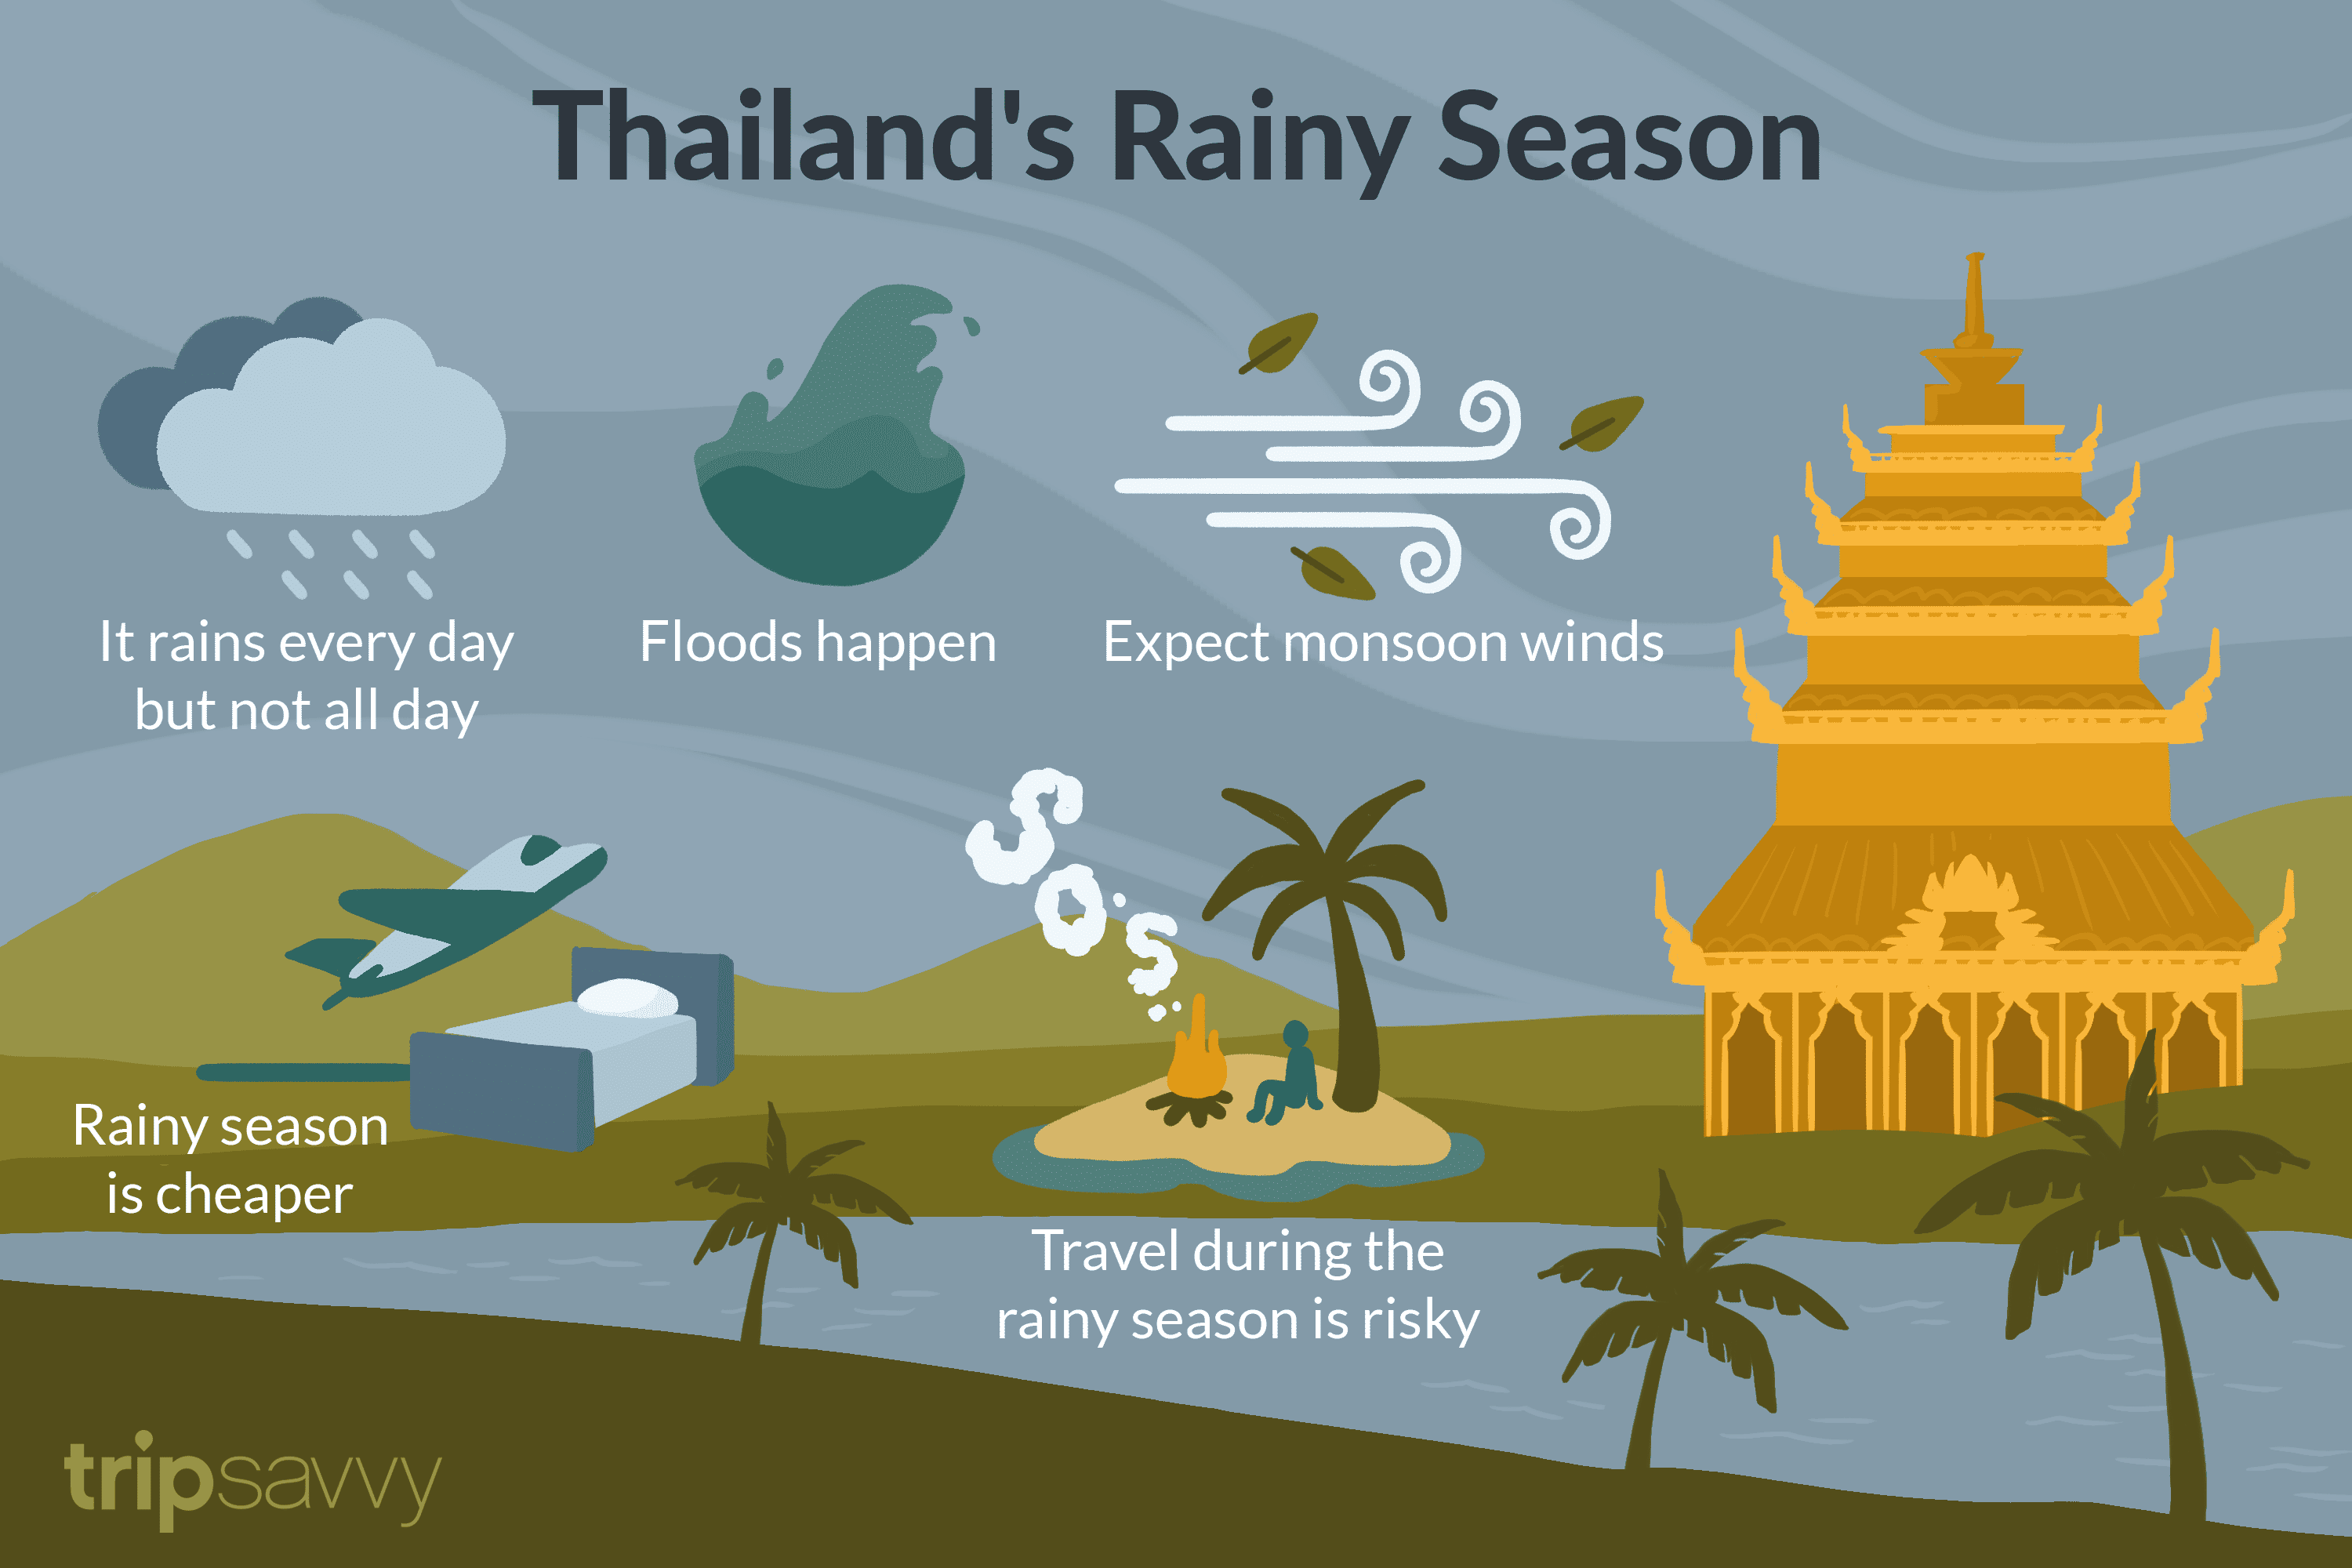 Thailand's Rainy Season: What to Expect